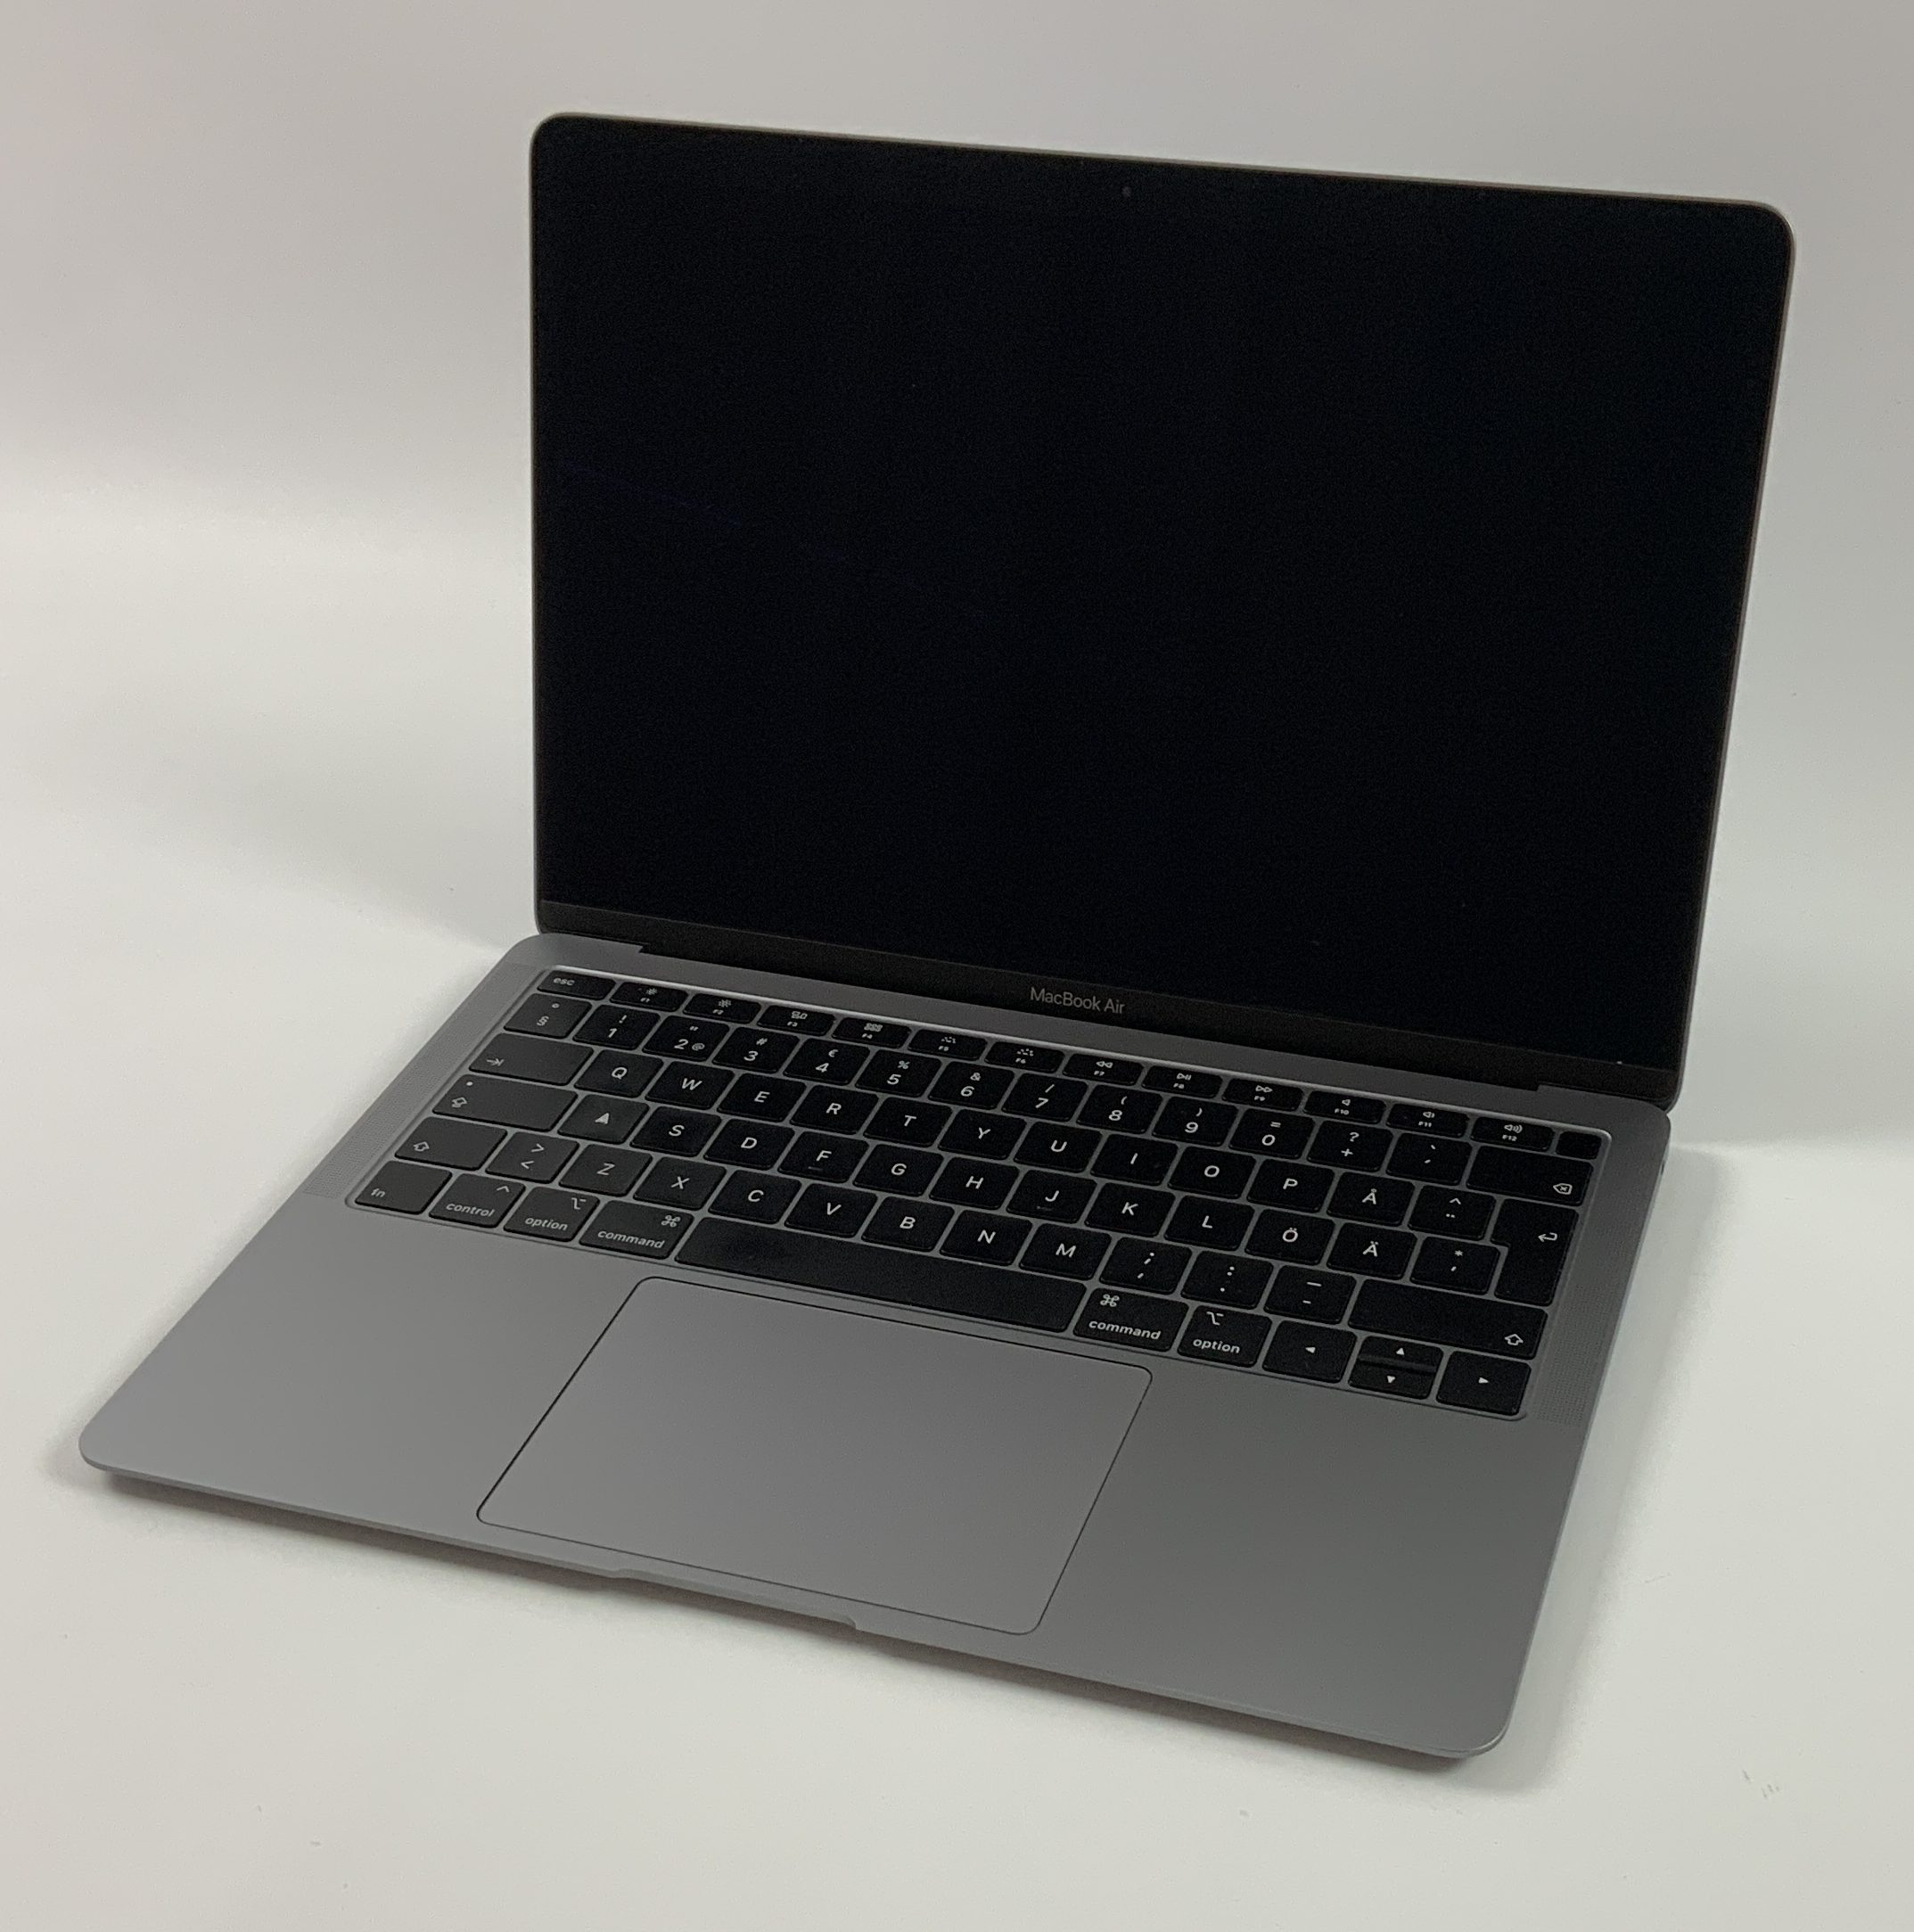 "MacBook Air 13"" Late 2018 (Intel Core i5 1.6 GHz 8 GB RAM 512 GB SSD), Space Gray, Intel Core i5 1.6 GHz, 8 GB RAM, 512 GB SSD, Bild 1"